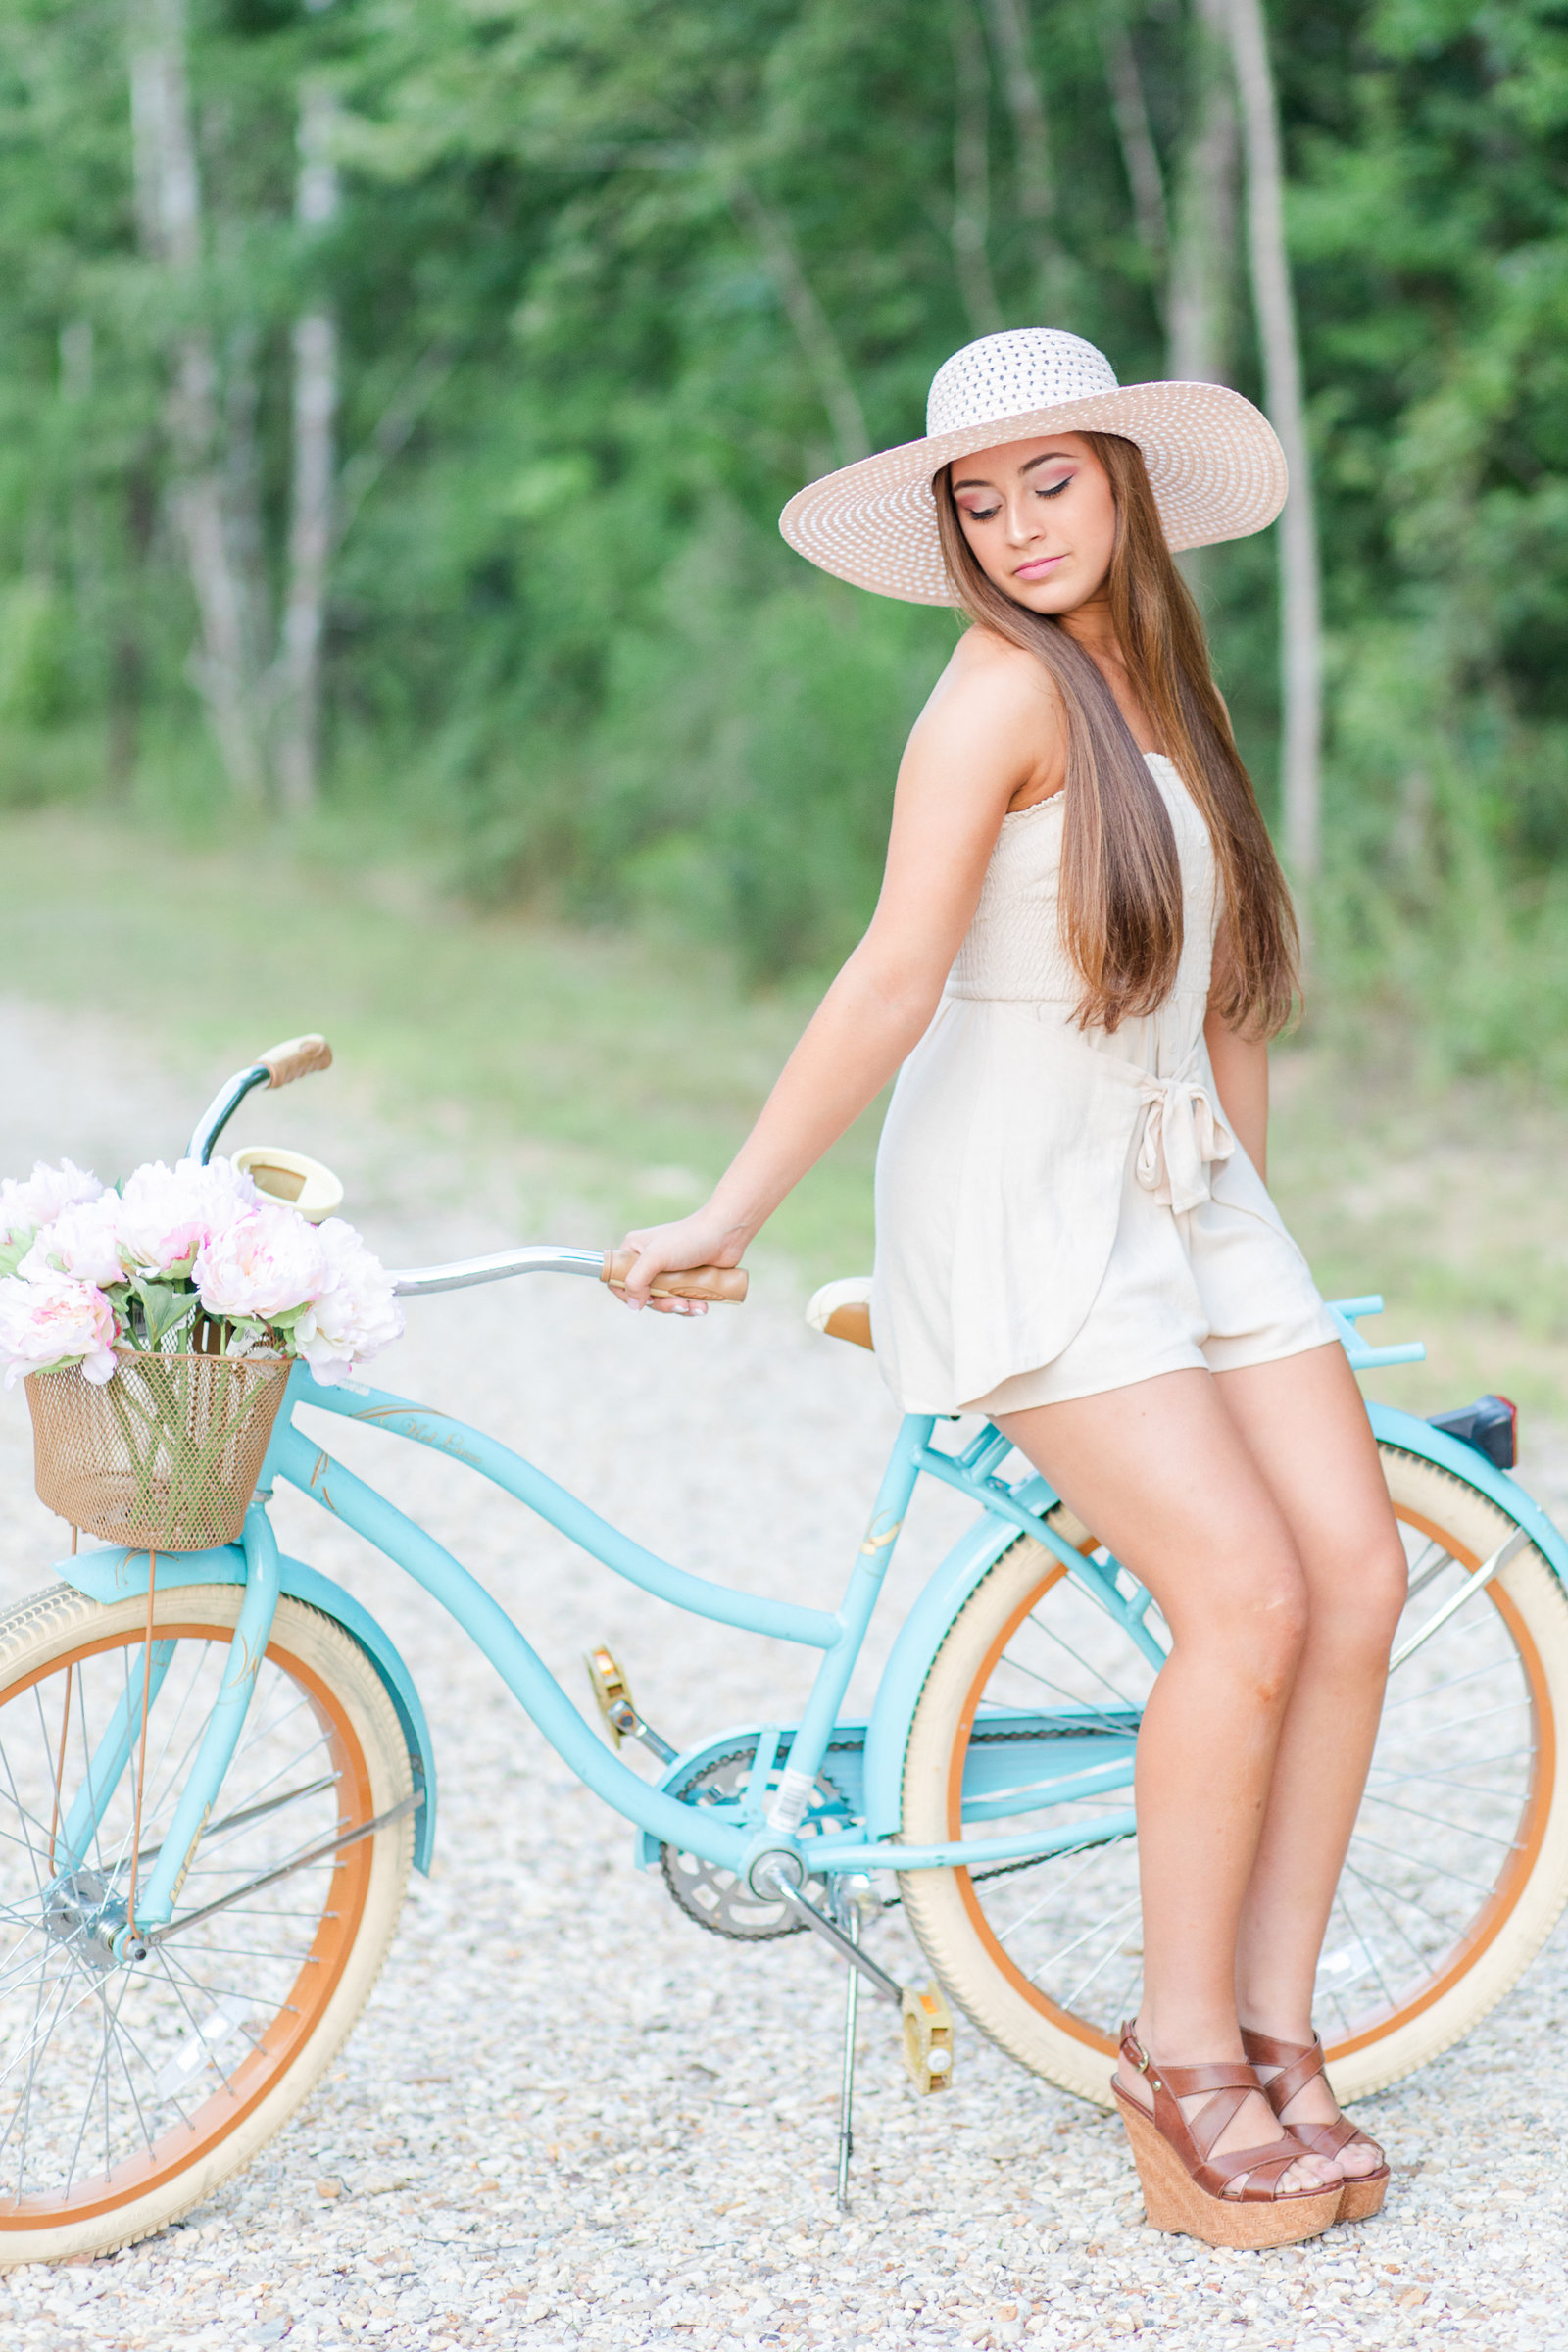 Vintage Bike Photoshoot